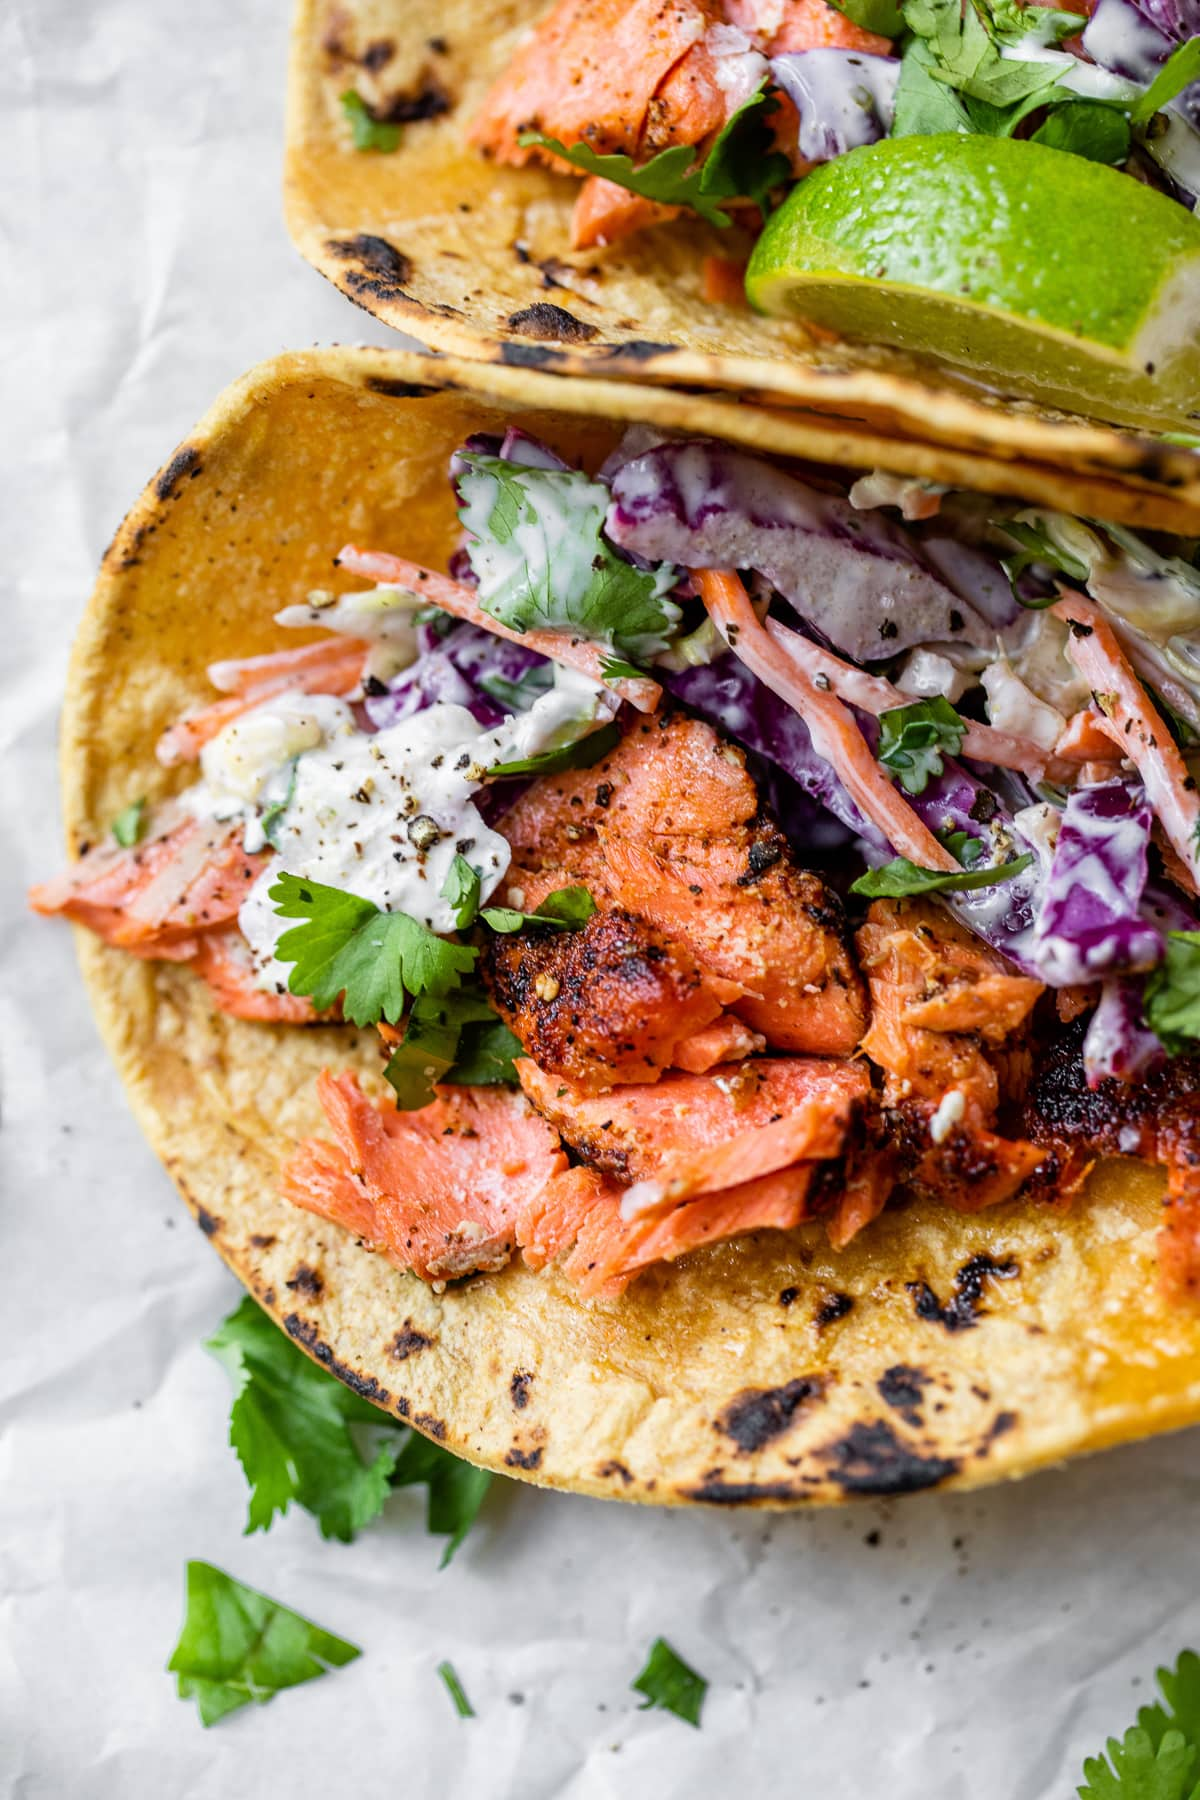 Easy salmon tacos in a corn tortilla topped with fresh cilantro leaves.